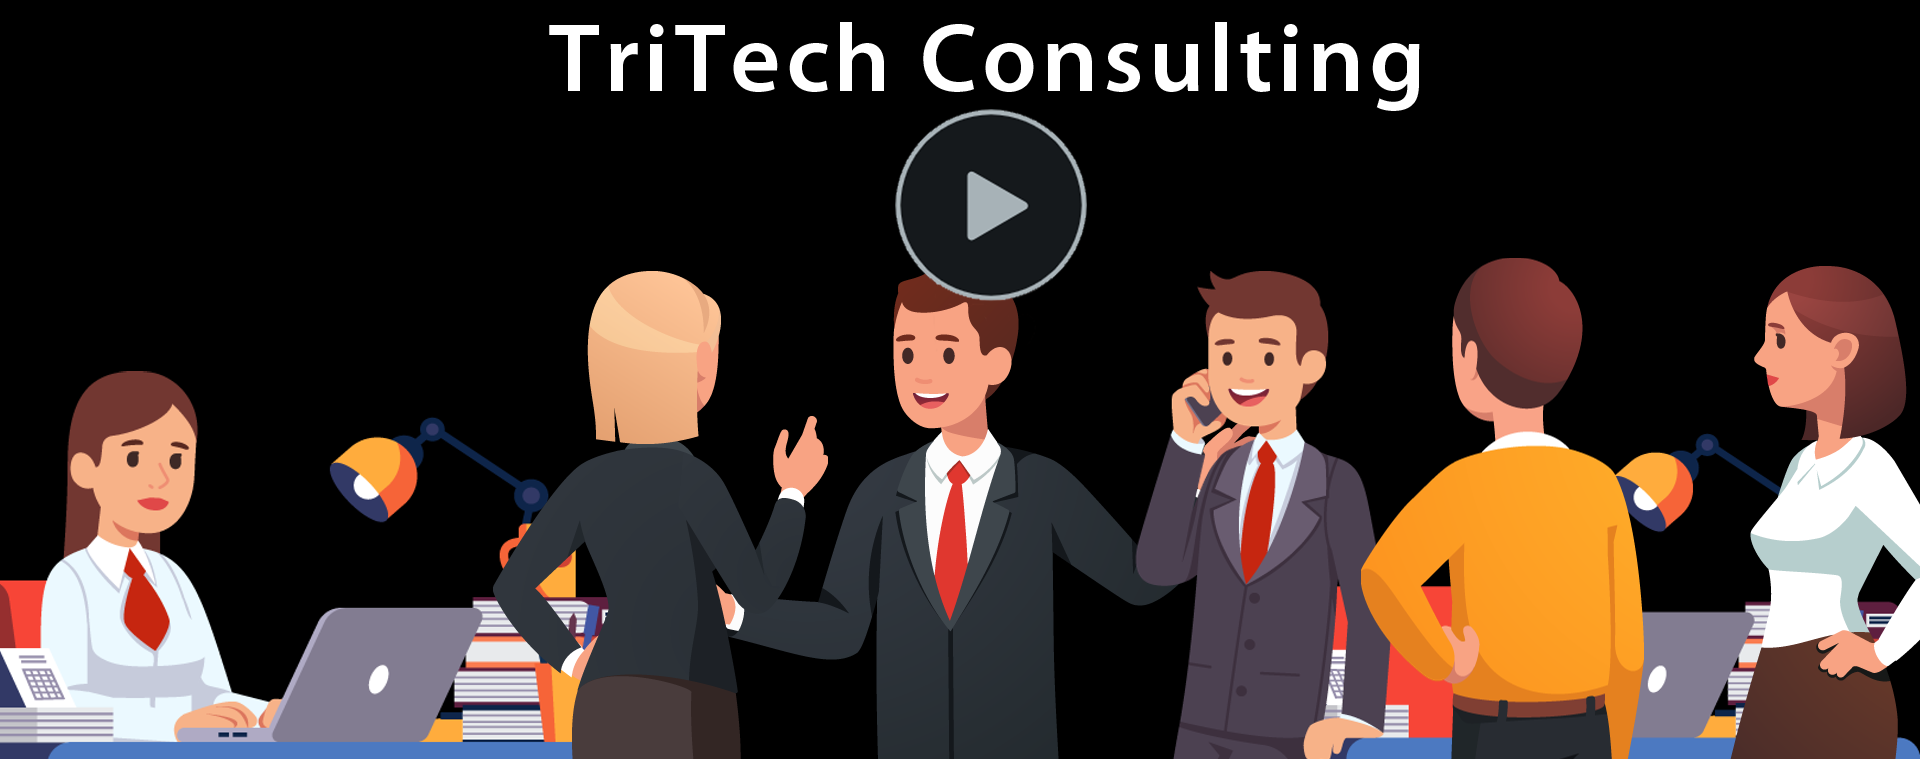 TriTech Consulting